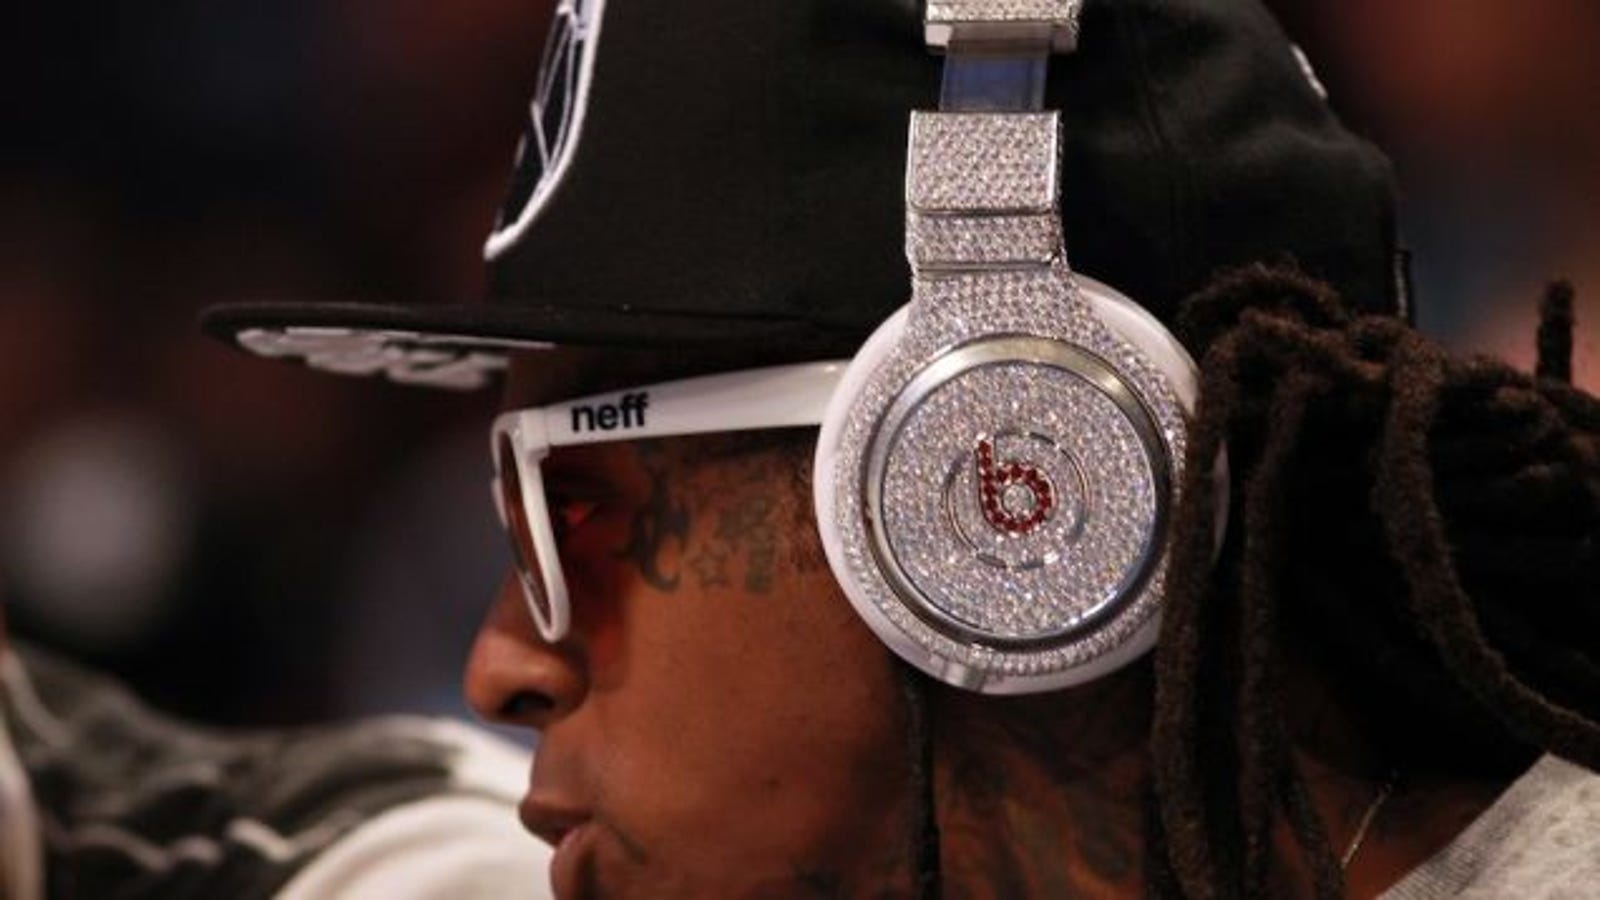 mic earbuds for laptop - Report: Apple Is Getting Ready to Buy Beats for $3.2 Billion